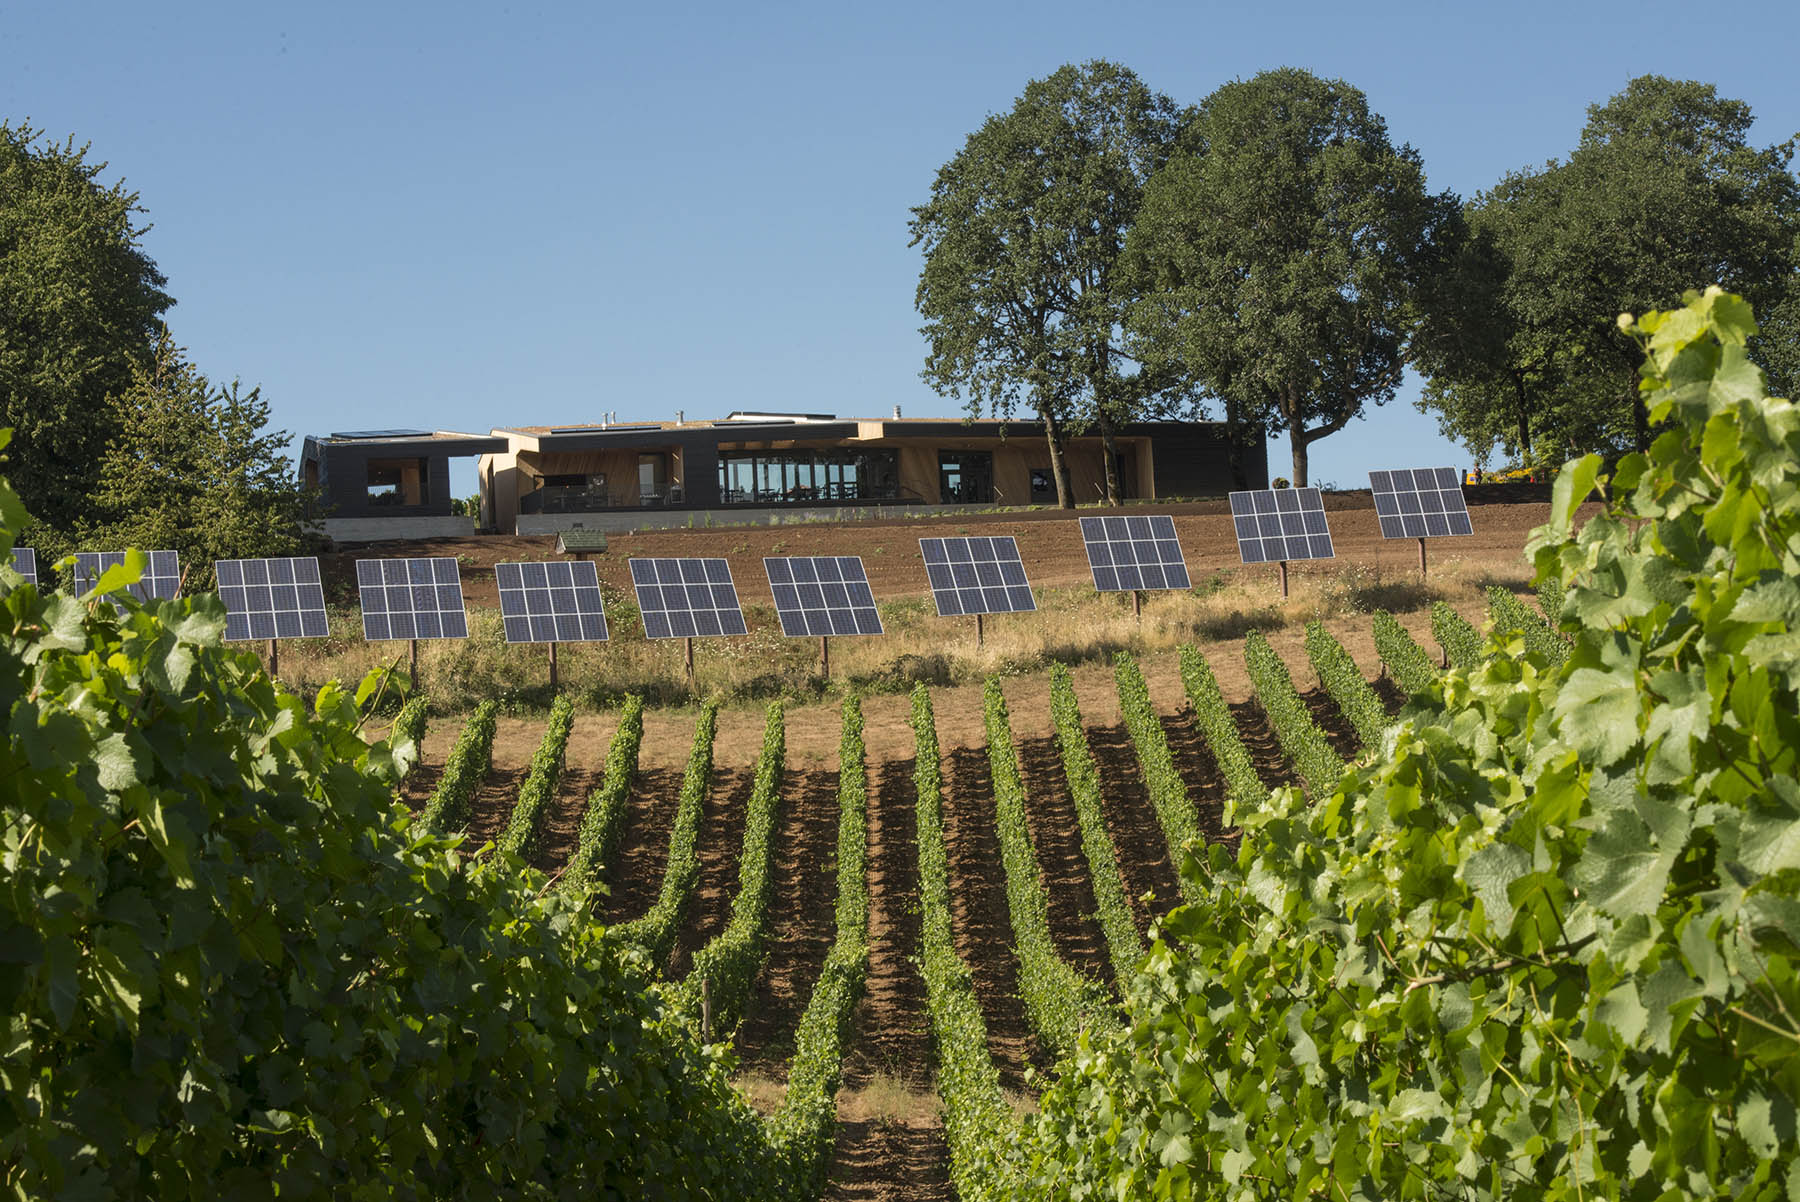 Energy from existing PV panels was reallocated to the tasting room, making its goals of net-zero energy attainable. Photo courtesy of Andrea Johnson